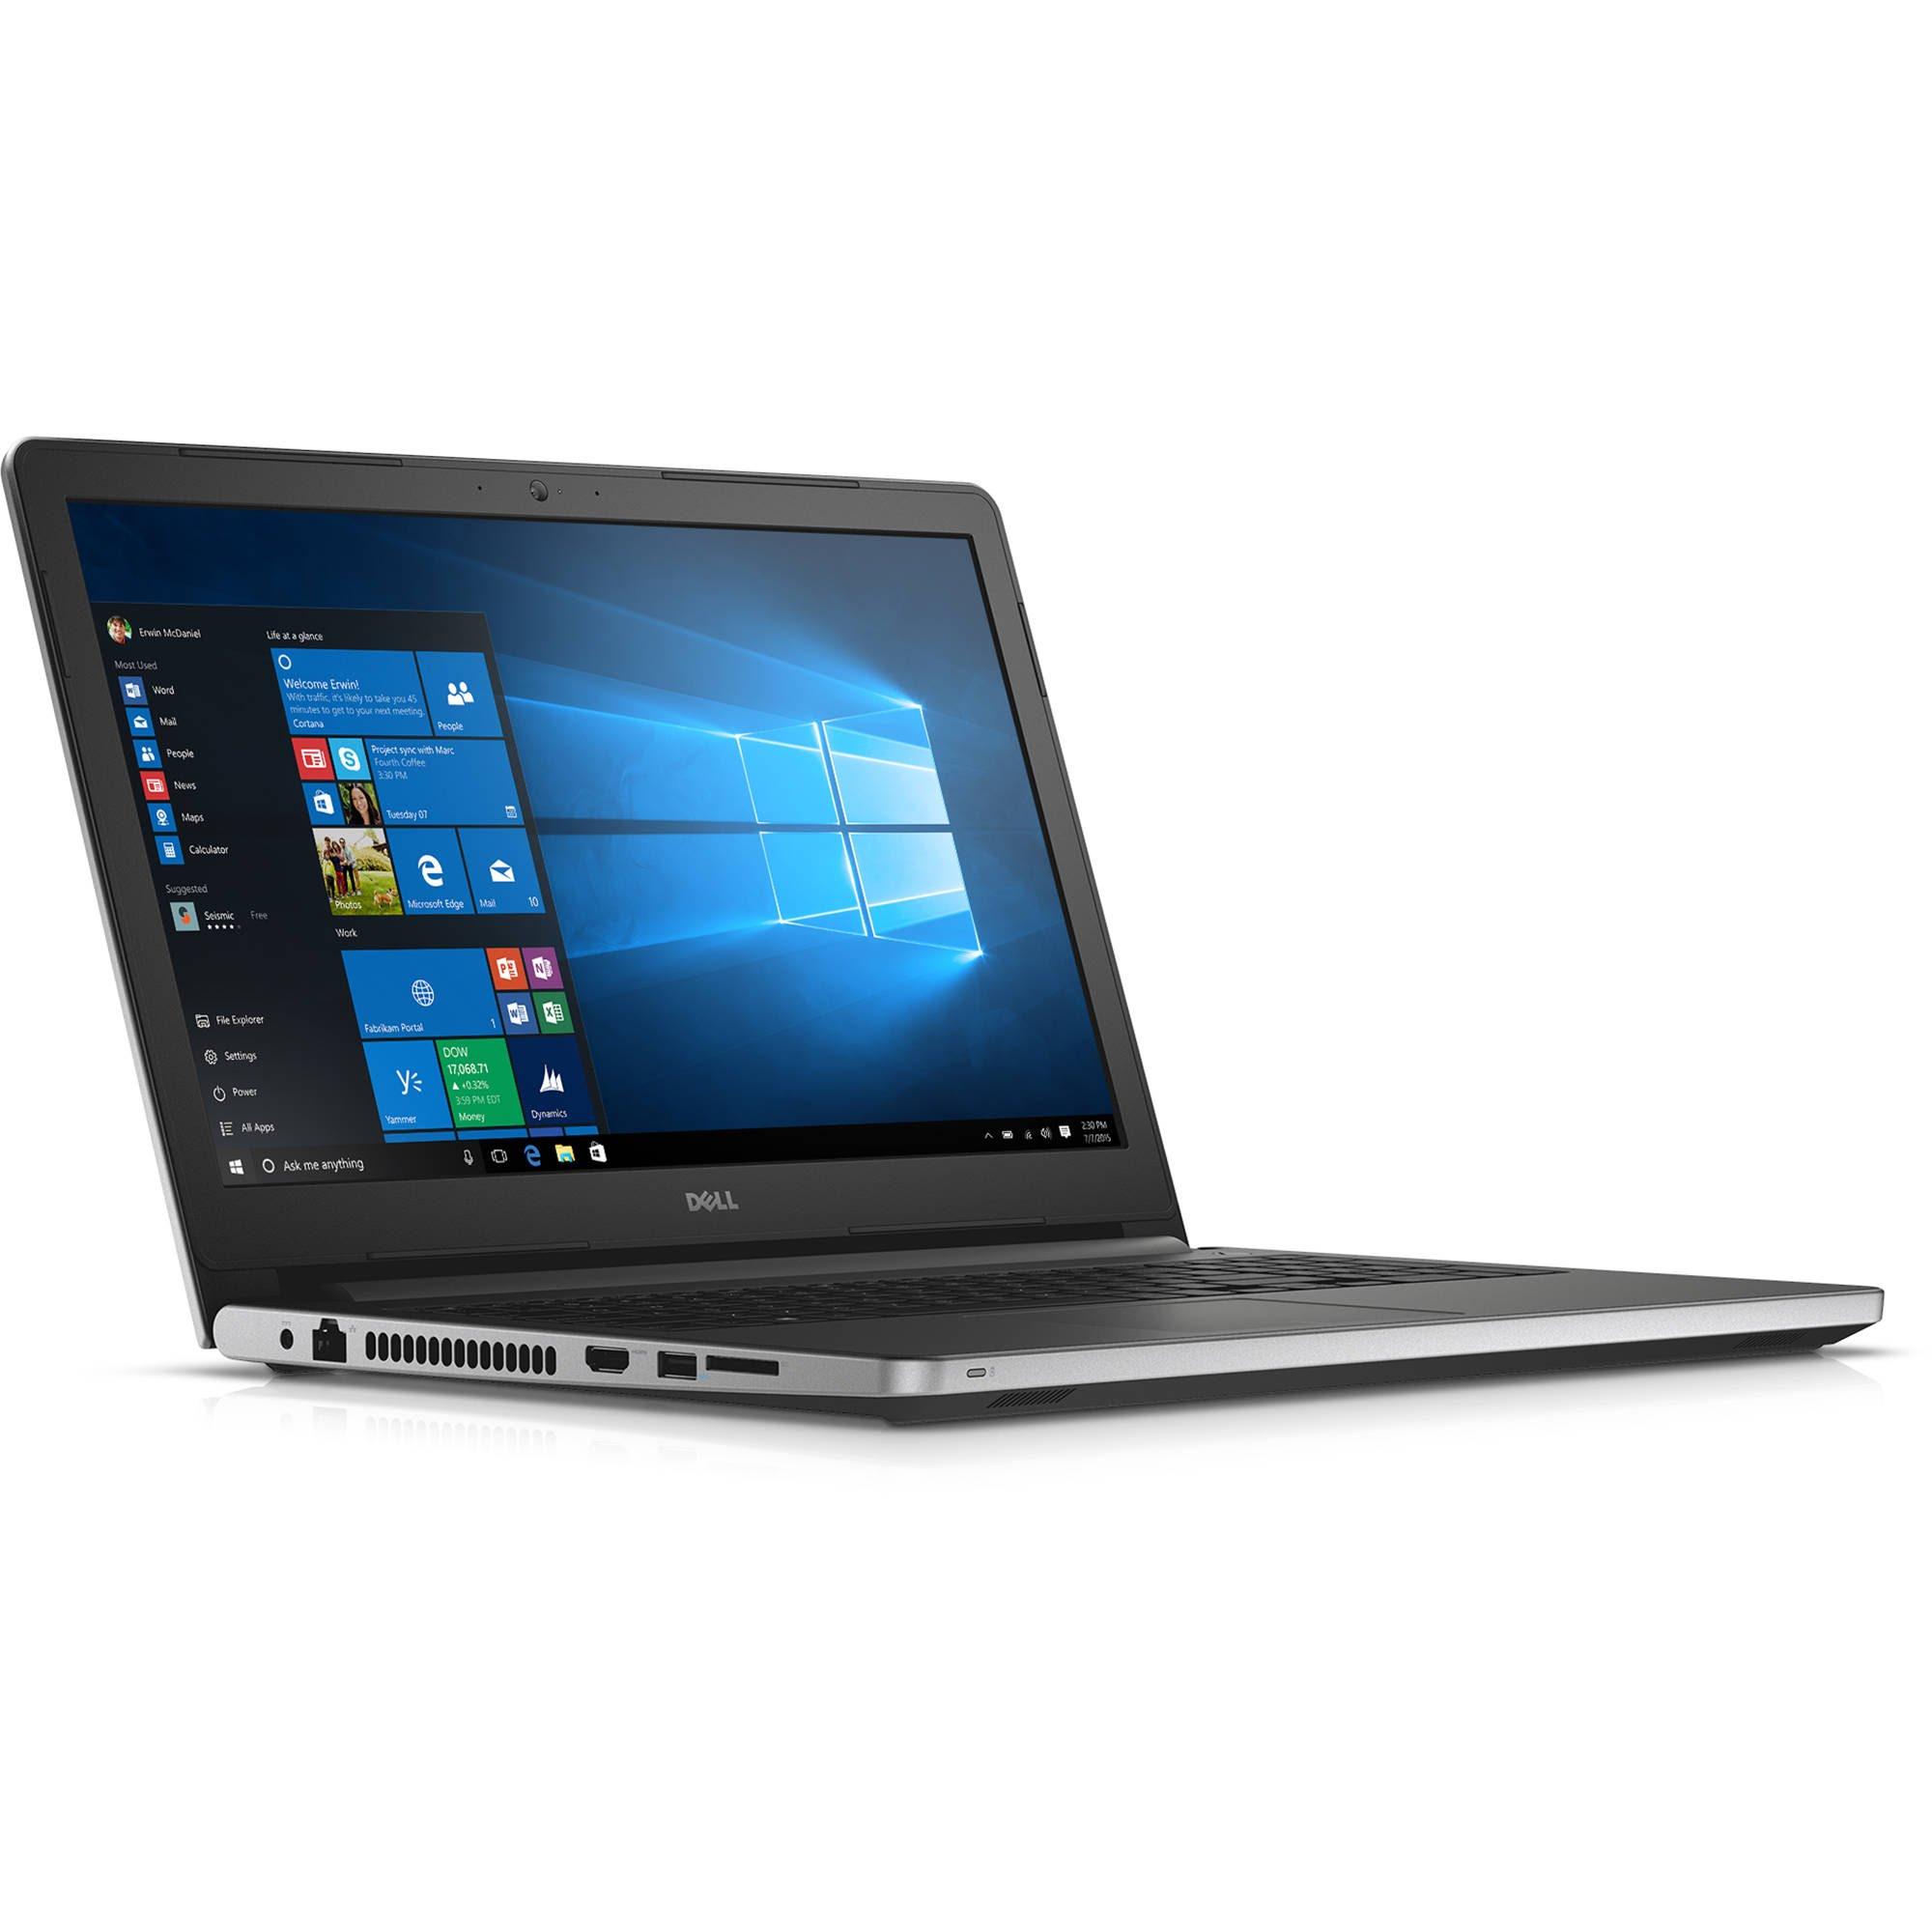 Dell Inspiron 5559 - best windows laptop